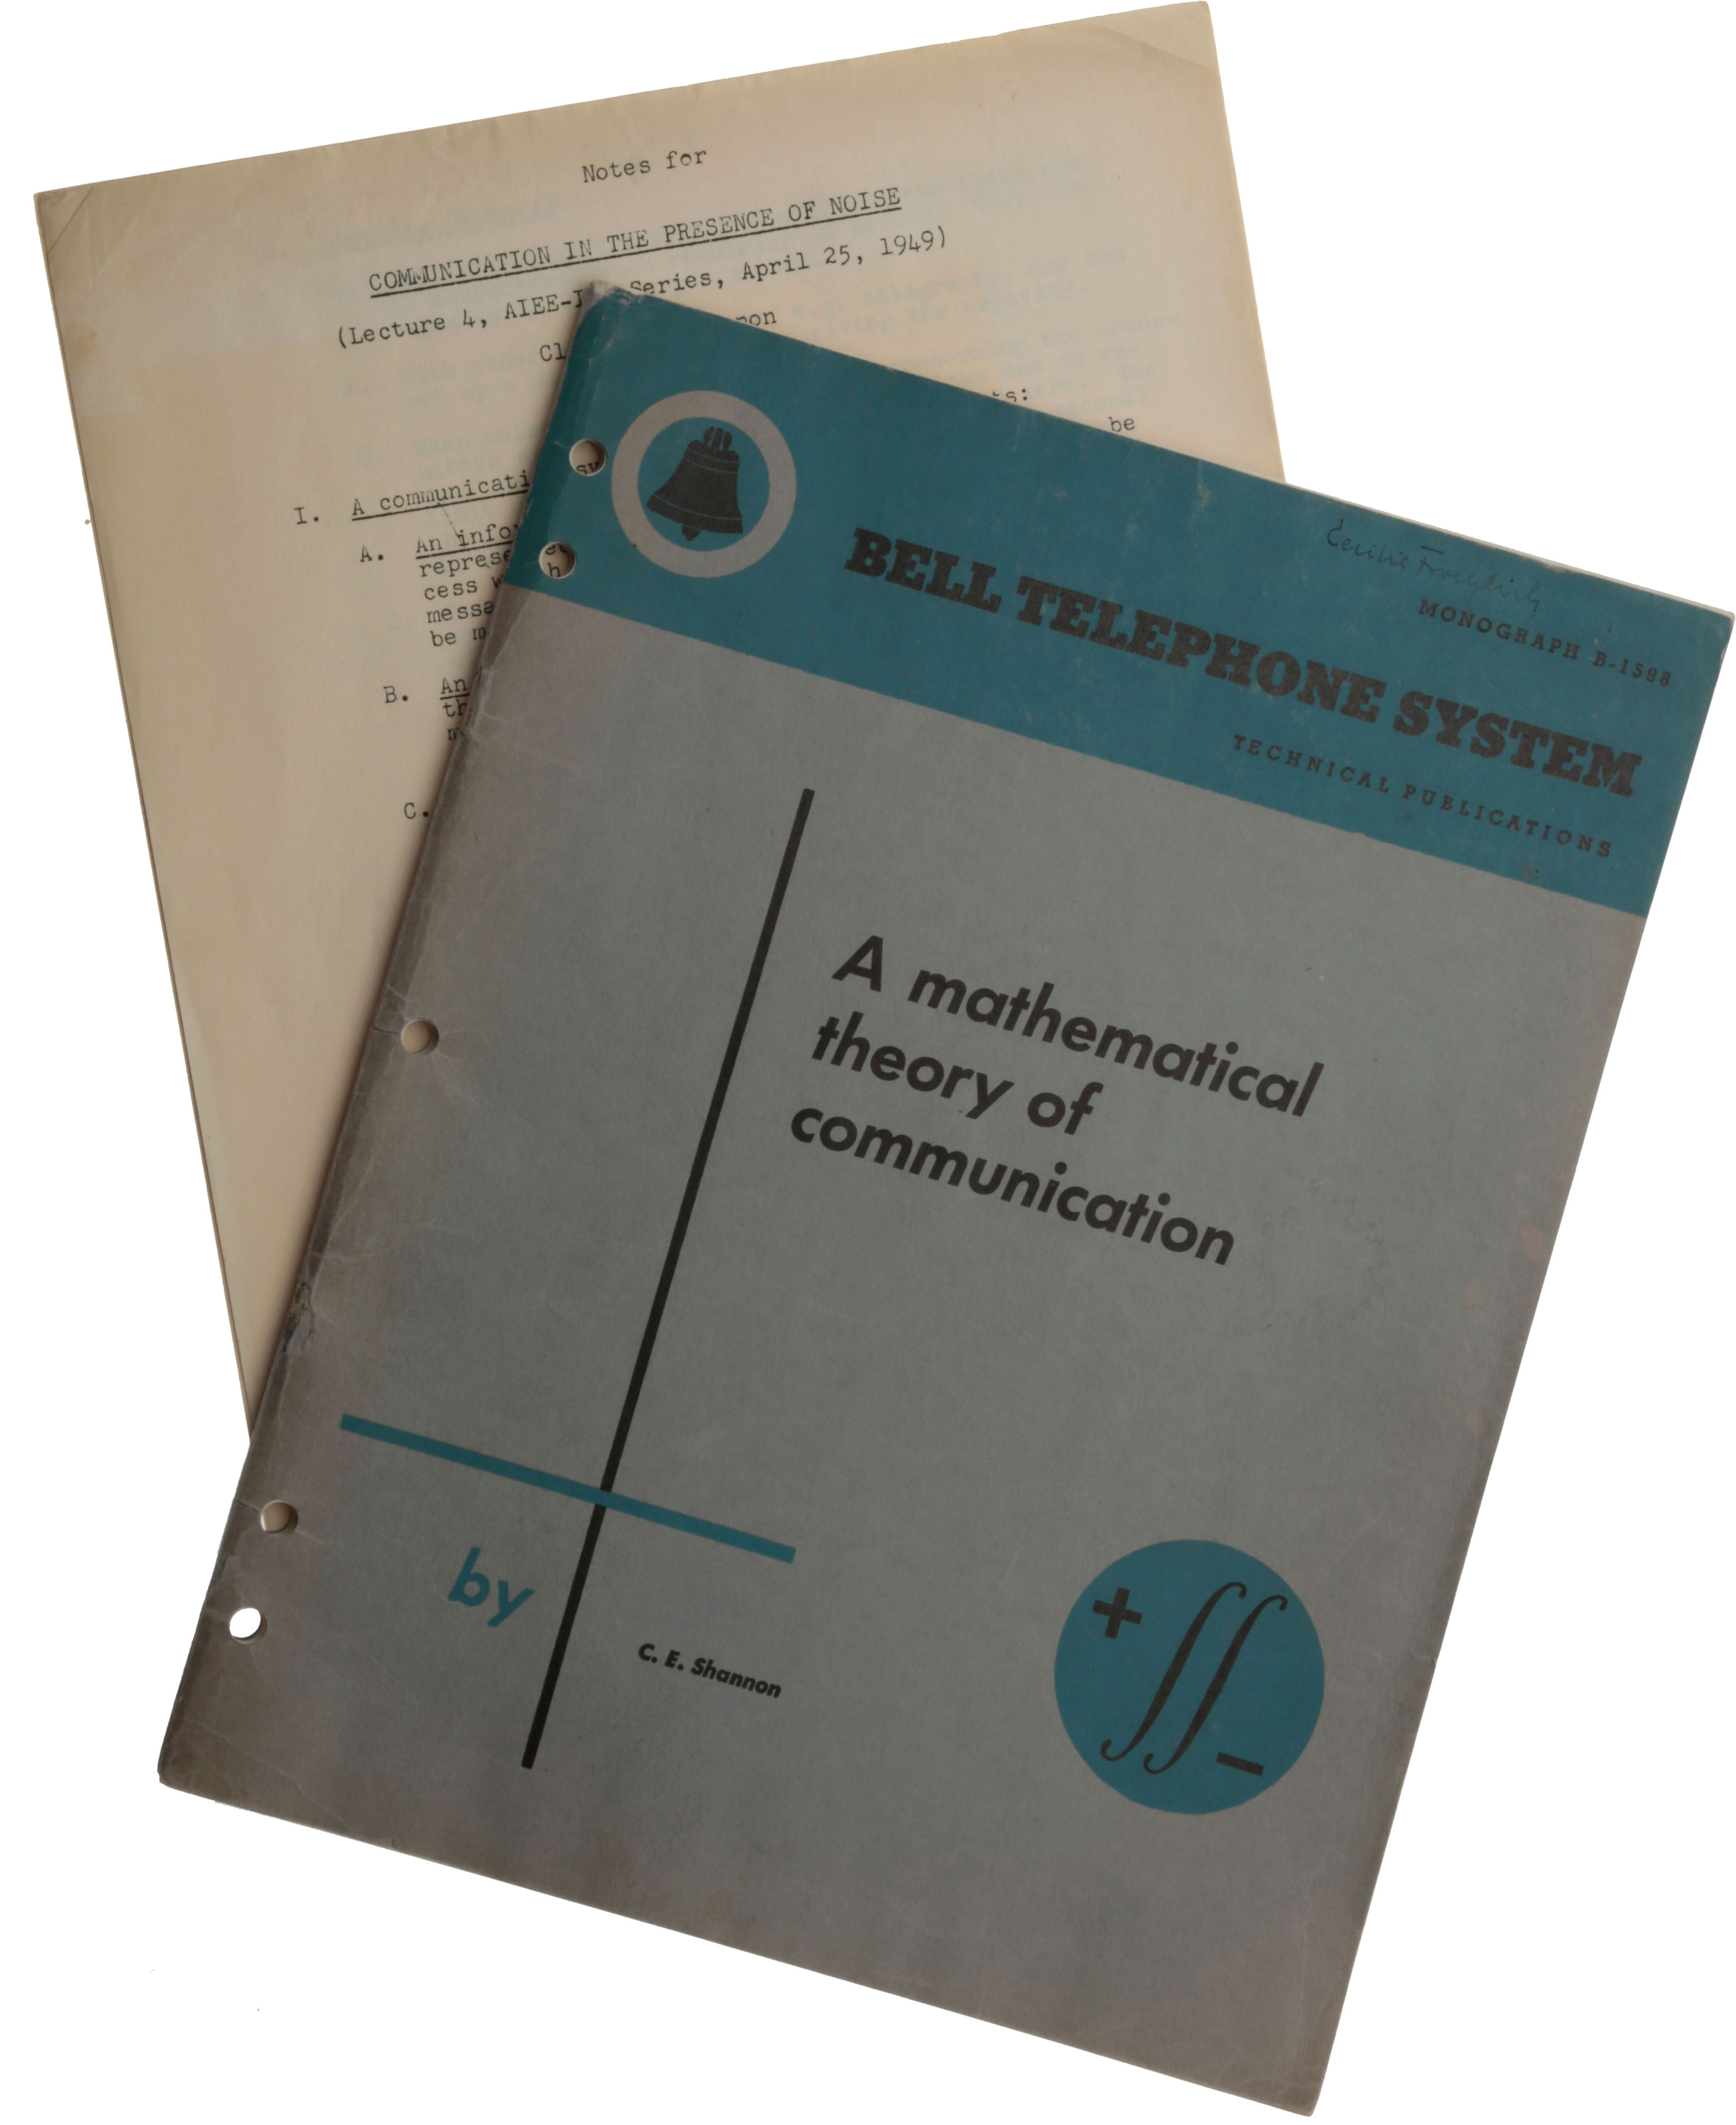 """A Mathematical Theory of Communication. Offprint from Bell System Technical Journal, Vol. 27 (July and October). [With:] Notes for """"Communication in the Presence of Noise"""" (Lecture 4, AIEE-IRE series, April 25, 1949). Mimeograph typescript. Claude Elwood SHANNON."""